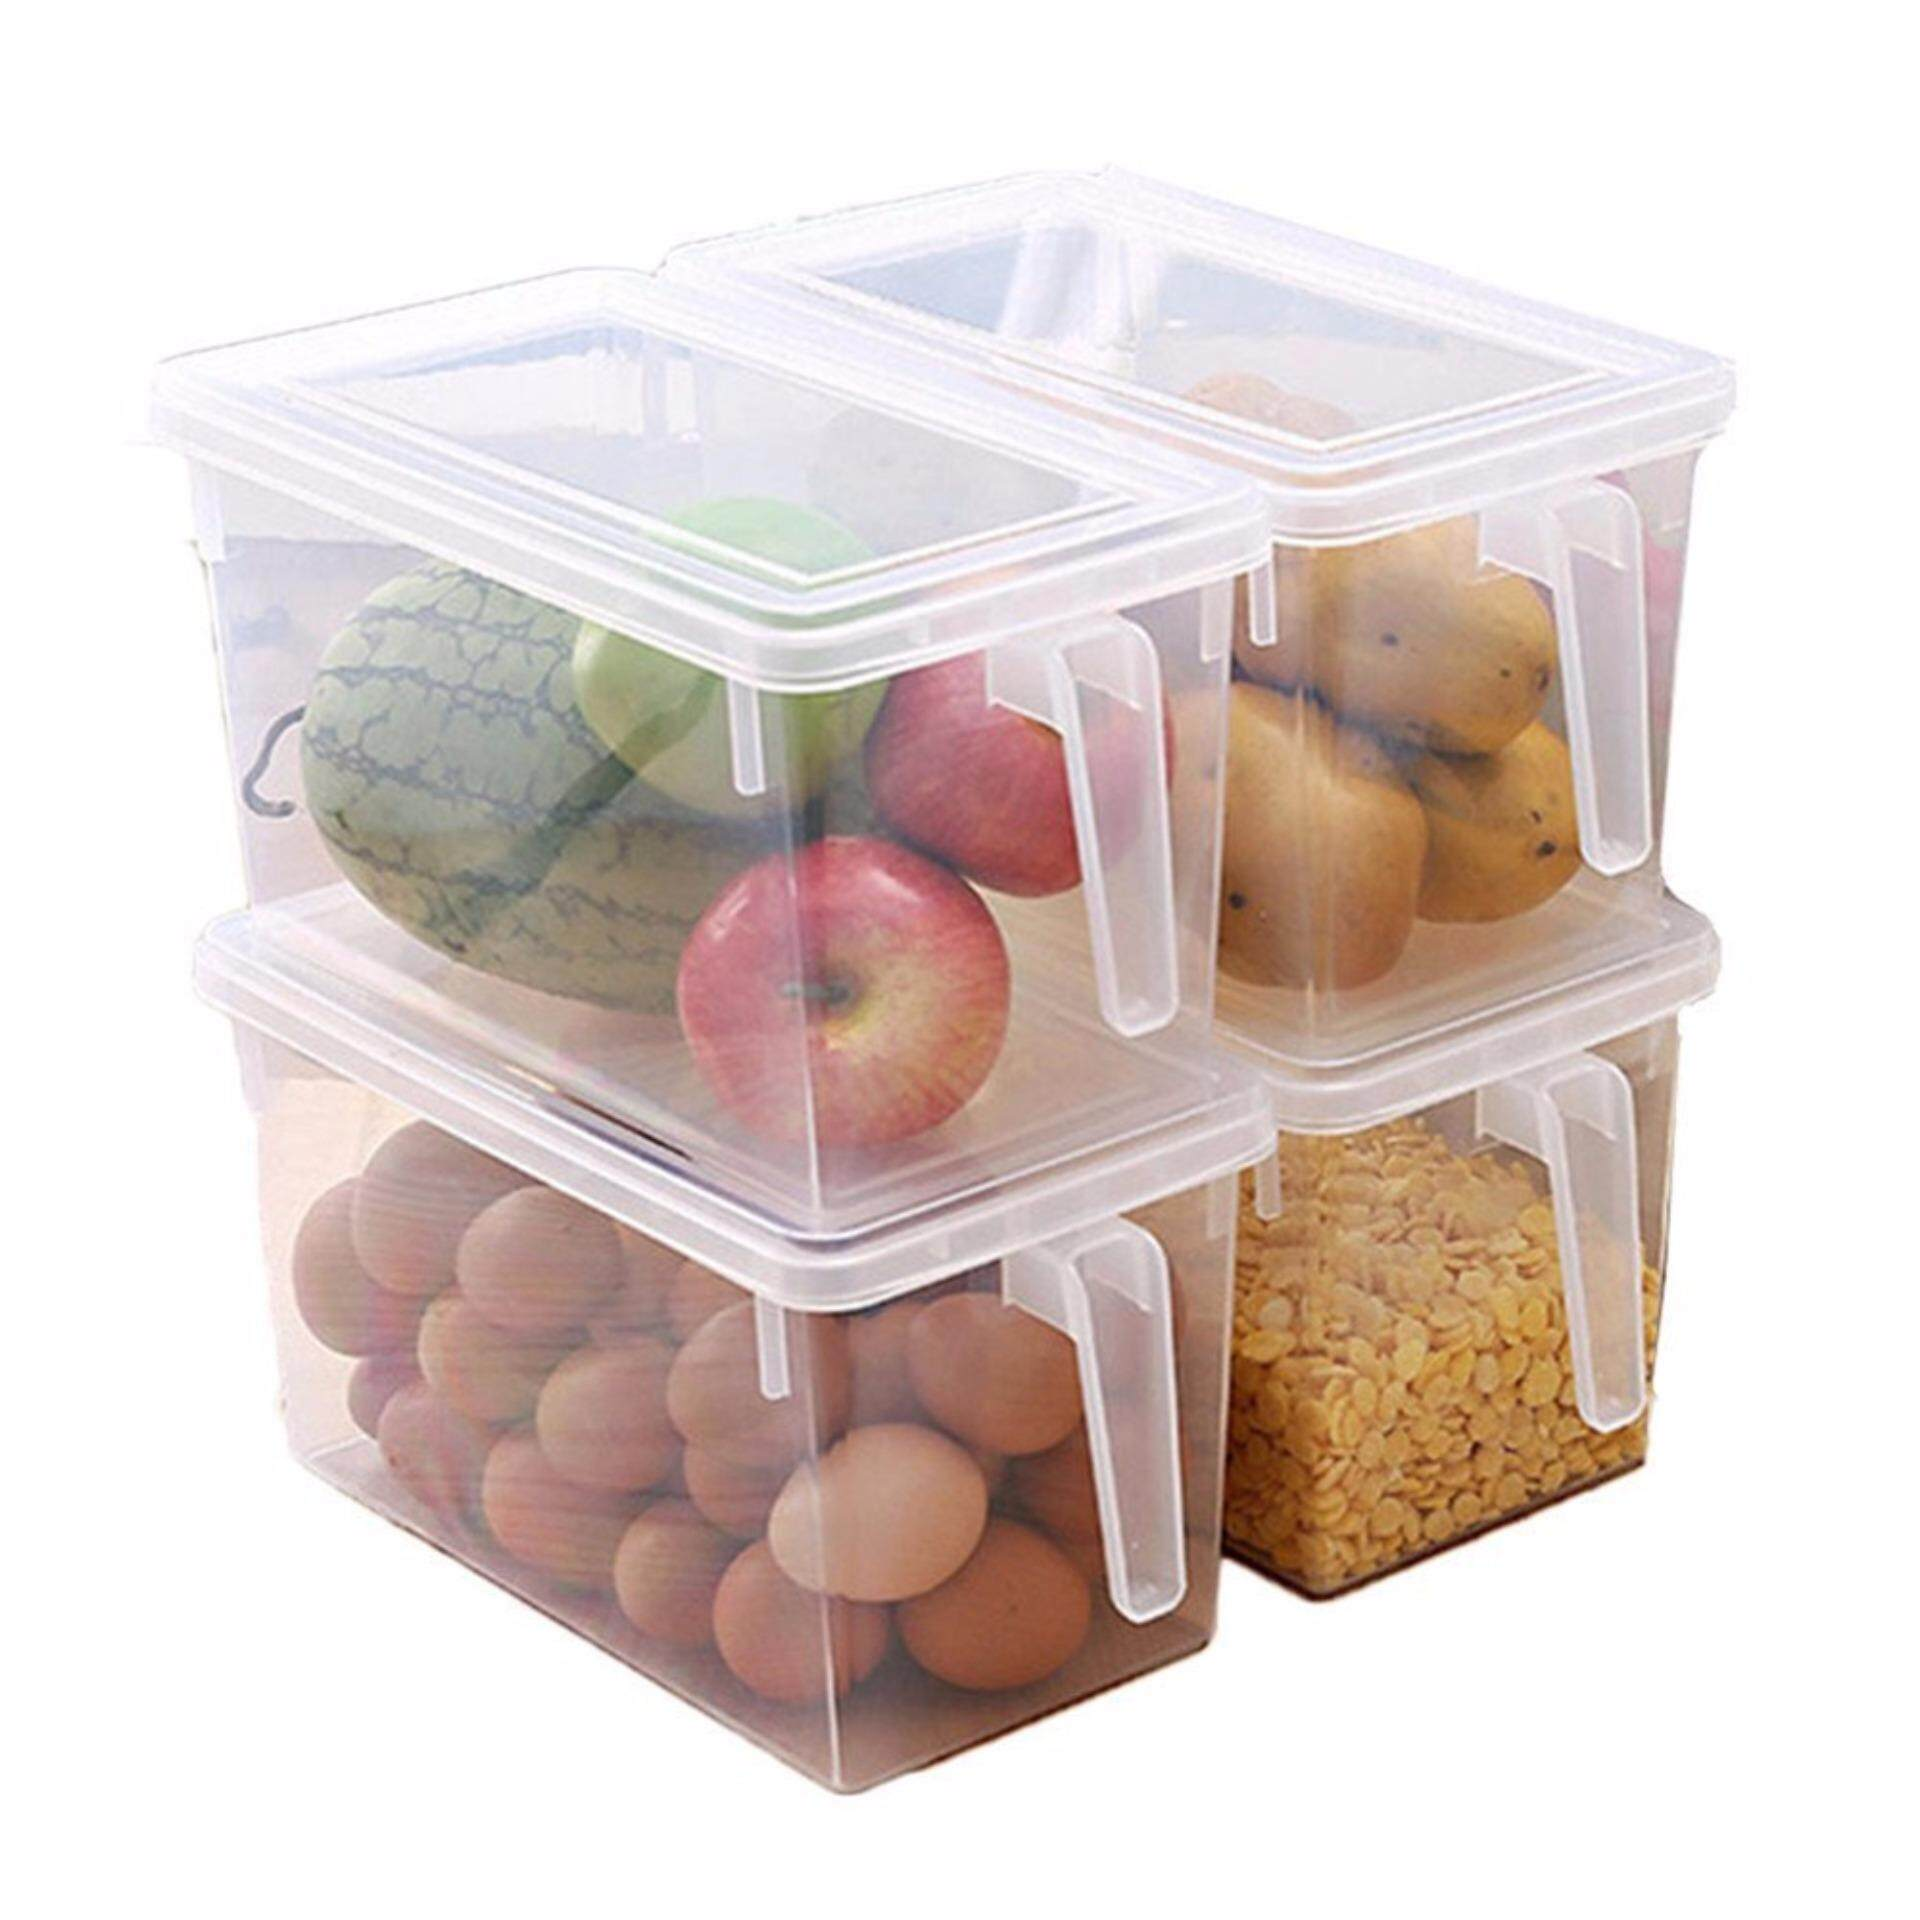 Best Rated Plastic Storage Containers Square Handle Food Storage Organizer Boxes With Lids For Refrigerator Fridge Cabinet Desk Set Of 4 Pack Large Organizer Bins Intl